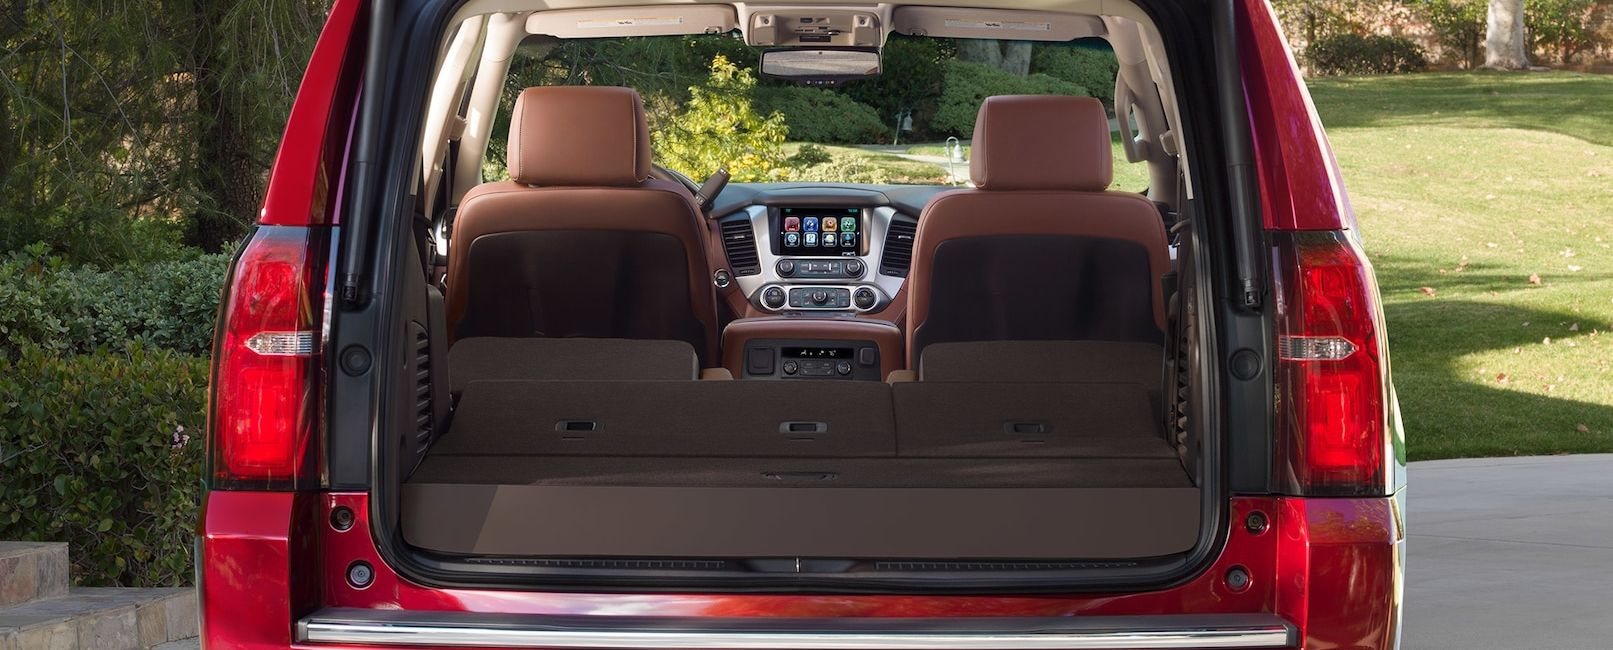 Chevy Tahoe Towing Capacity >> 2019 Chevrolet Tahoe Towing Capacity In Youngstown Oh Sweeney